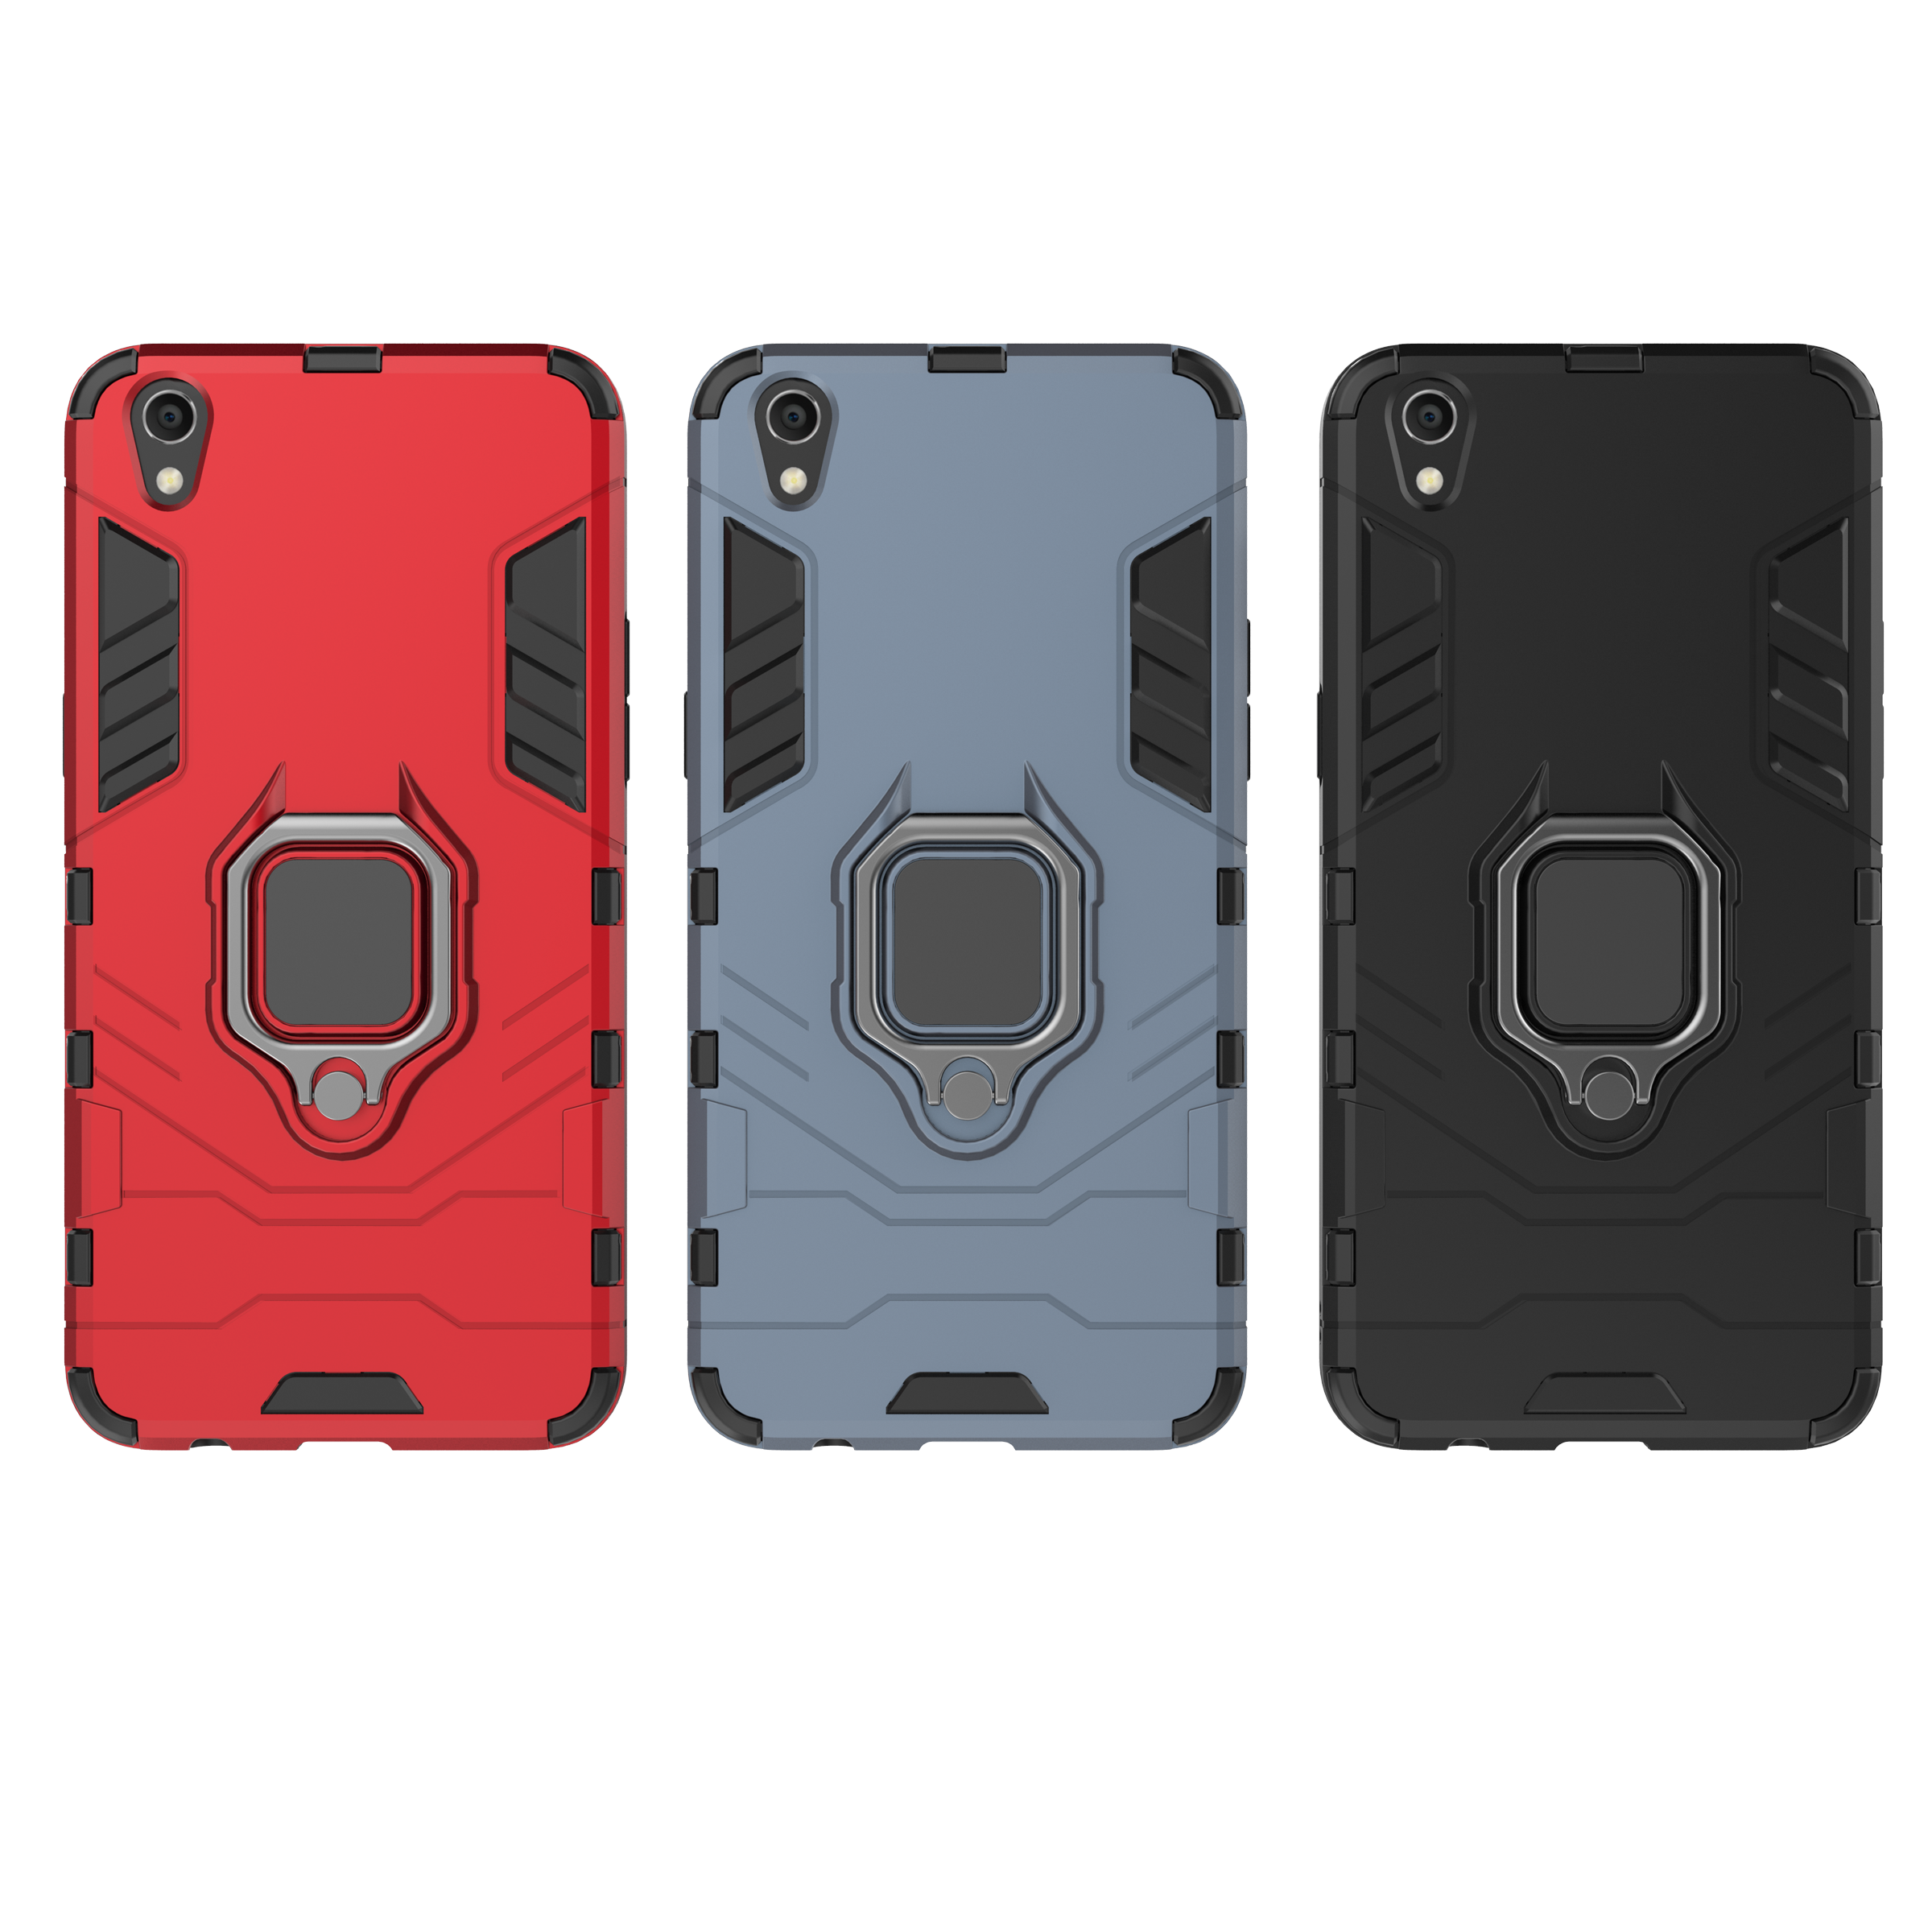 PC Hard Armor Stand Ring Shockproof <font><b>Case</b></font> for <font><b>OPPO</b></font> A39 <font><b>A57</b></font> A5 A3S AX5 R9 R9 Plus R9S R9S Plus R15 R11S R17 R15X K1 F11 F11 Pro image